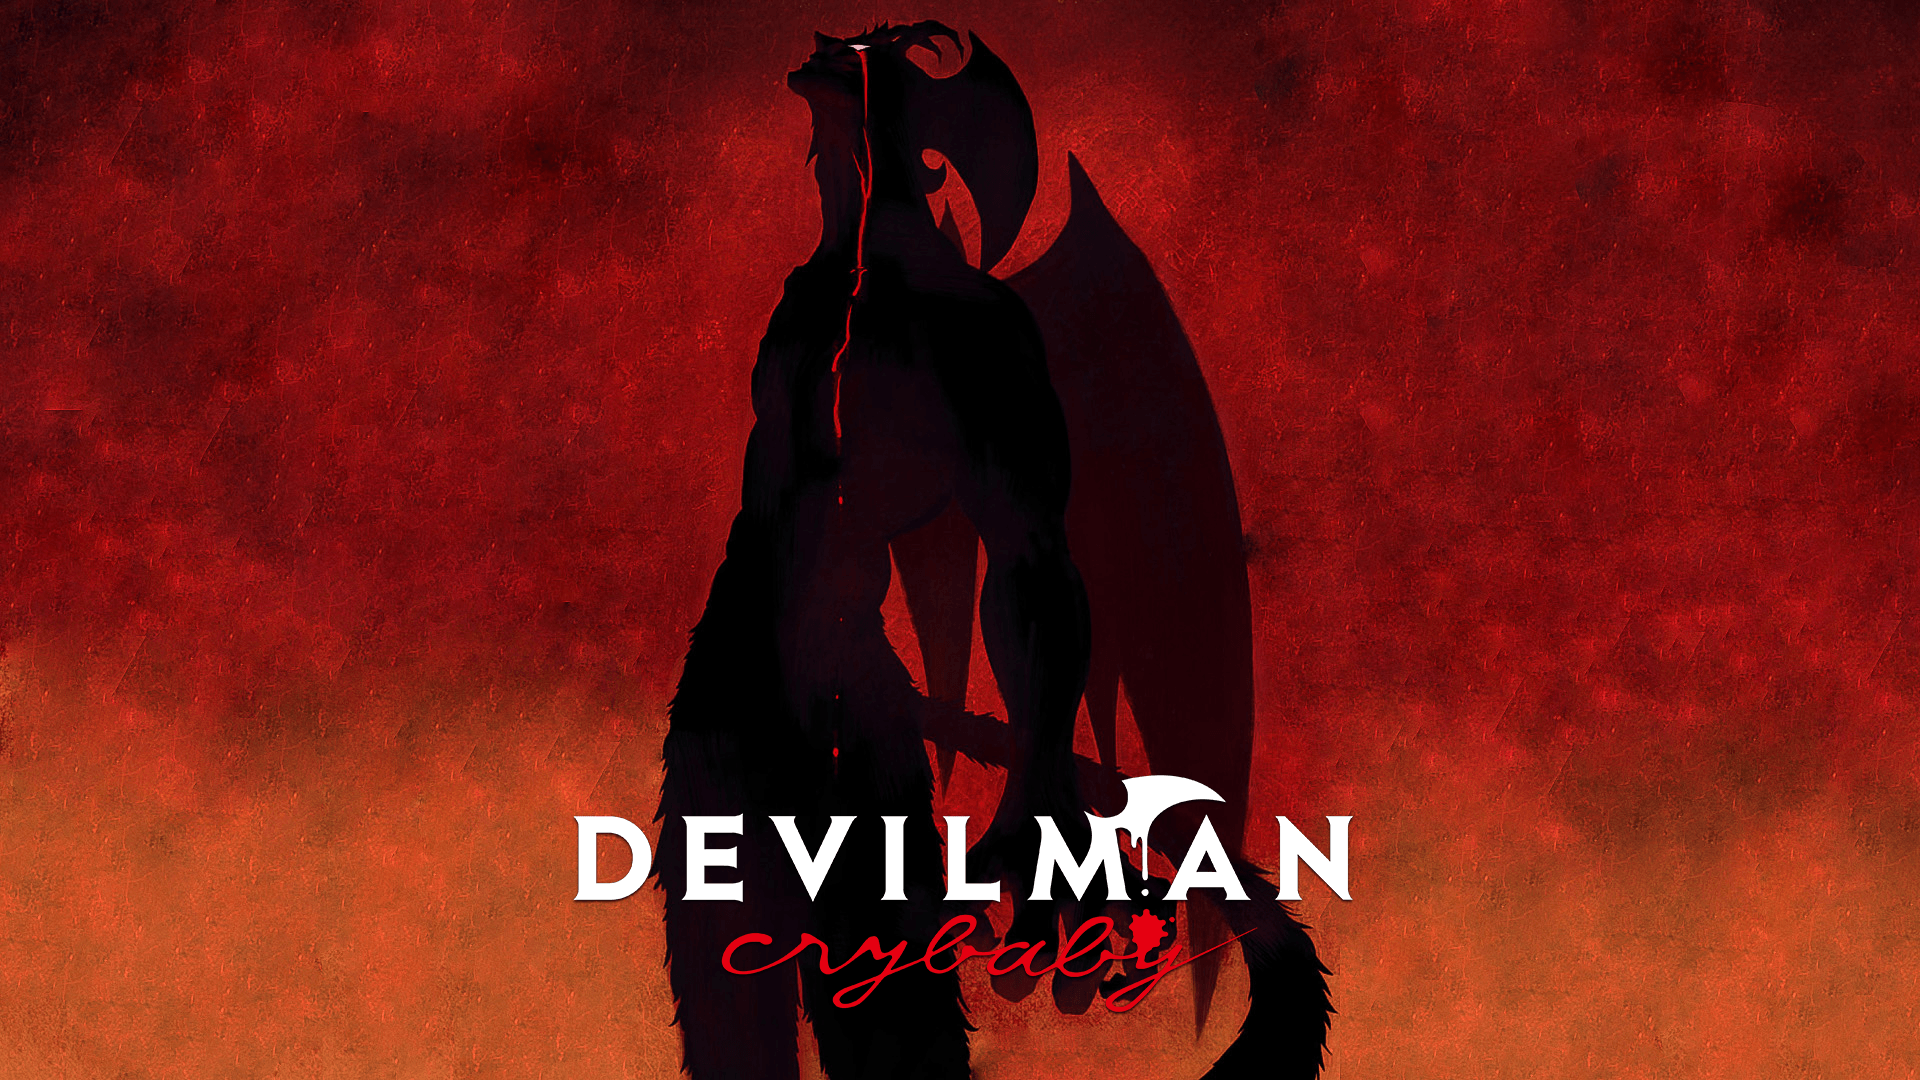 Devilman Crybaby Wallpapers - Wallpaper Cave